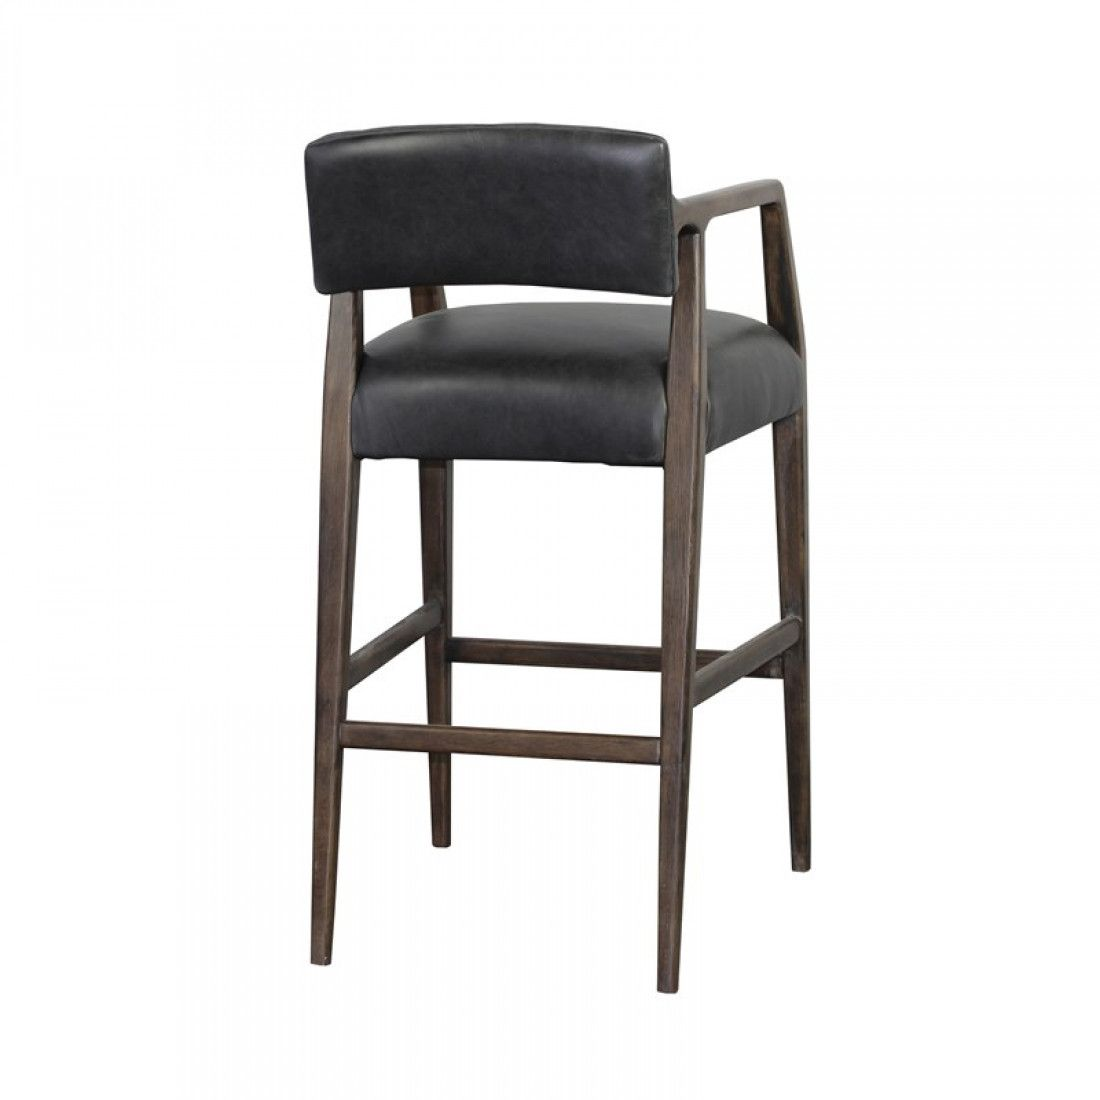 Wondrous Tyler Bar Stool Chaps Leather Furniture Bar Stools Caraccident5 Cool Chair Designs And Ideas Caraccident5Info